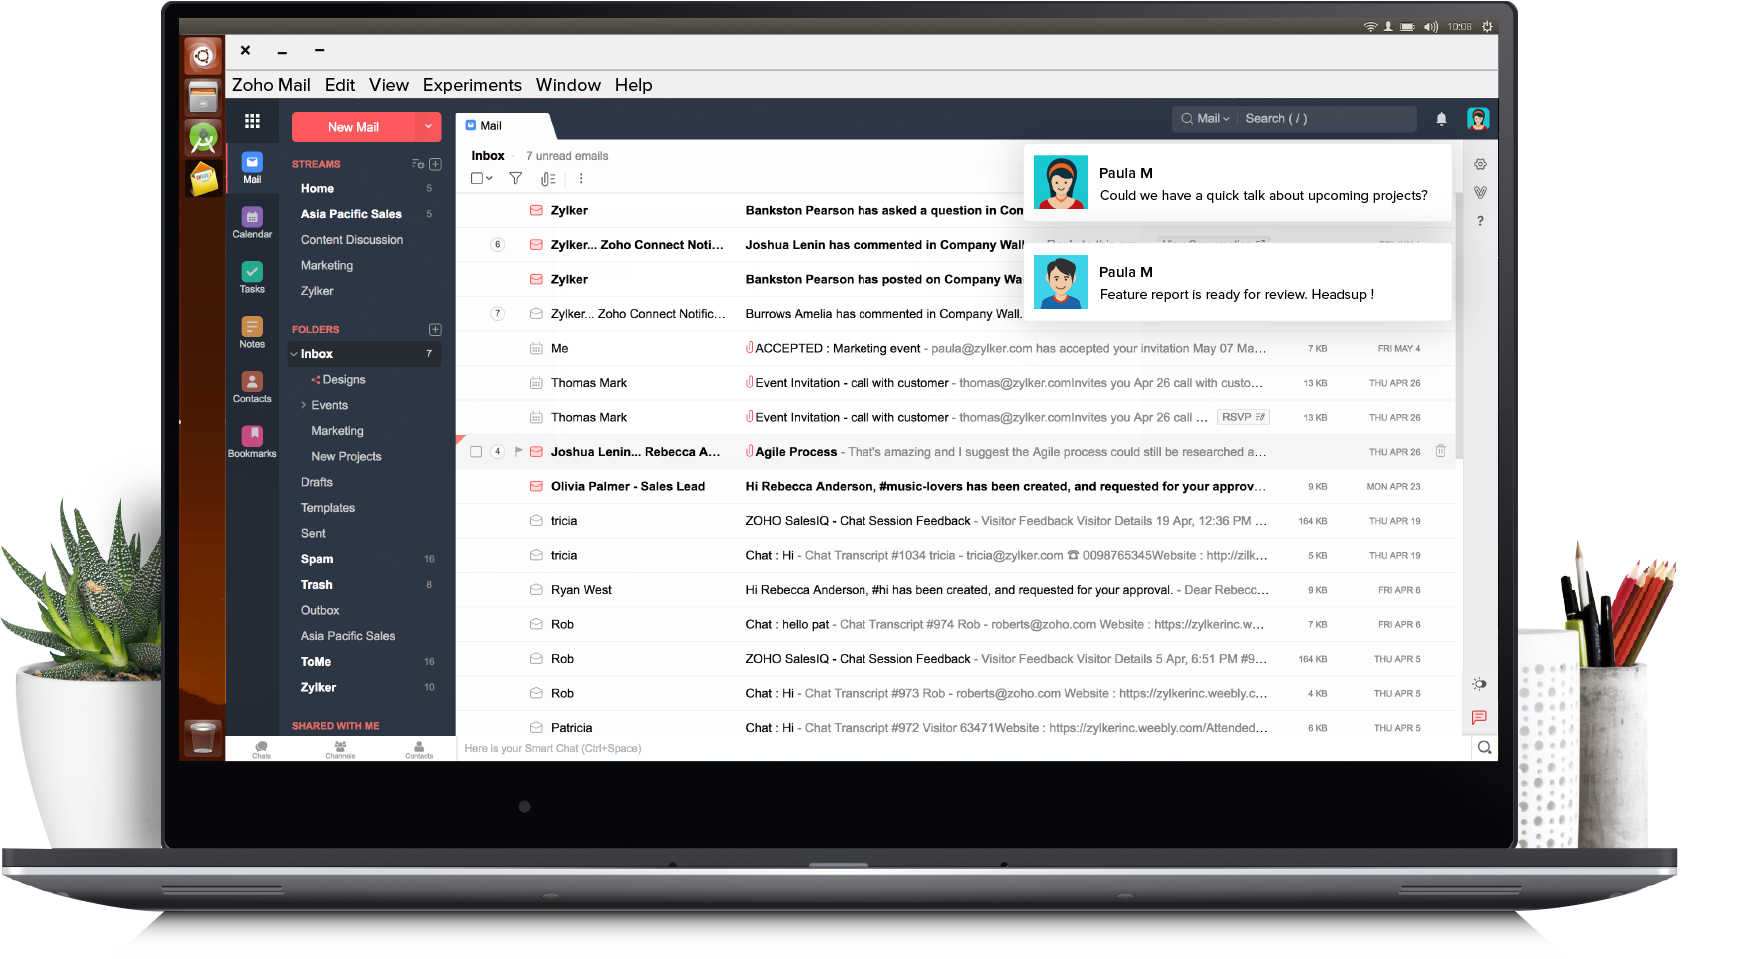 Download Zoho Mail Desktop App For Windows Mac Linux Platforms